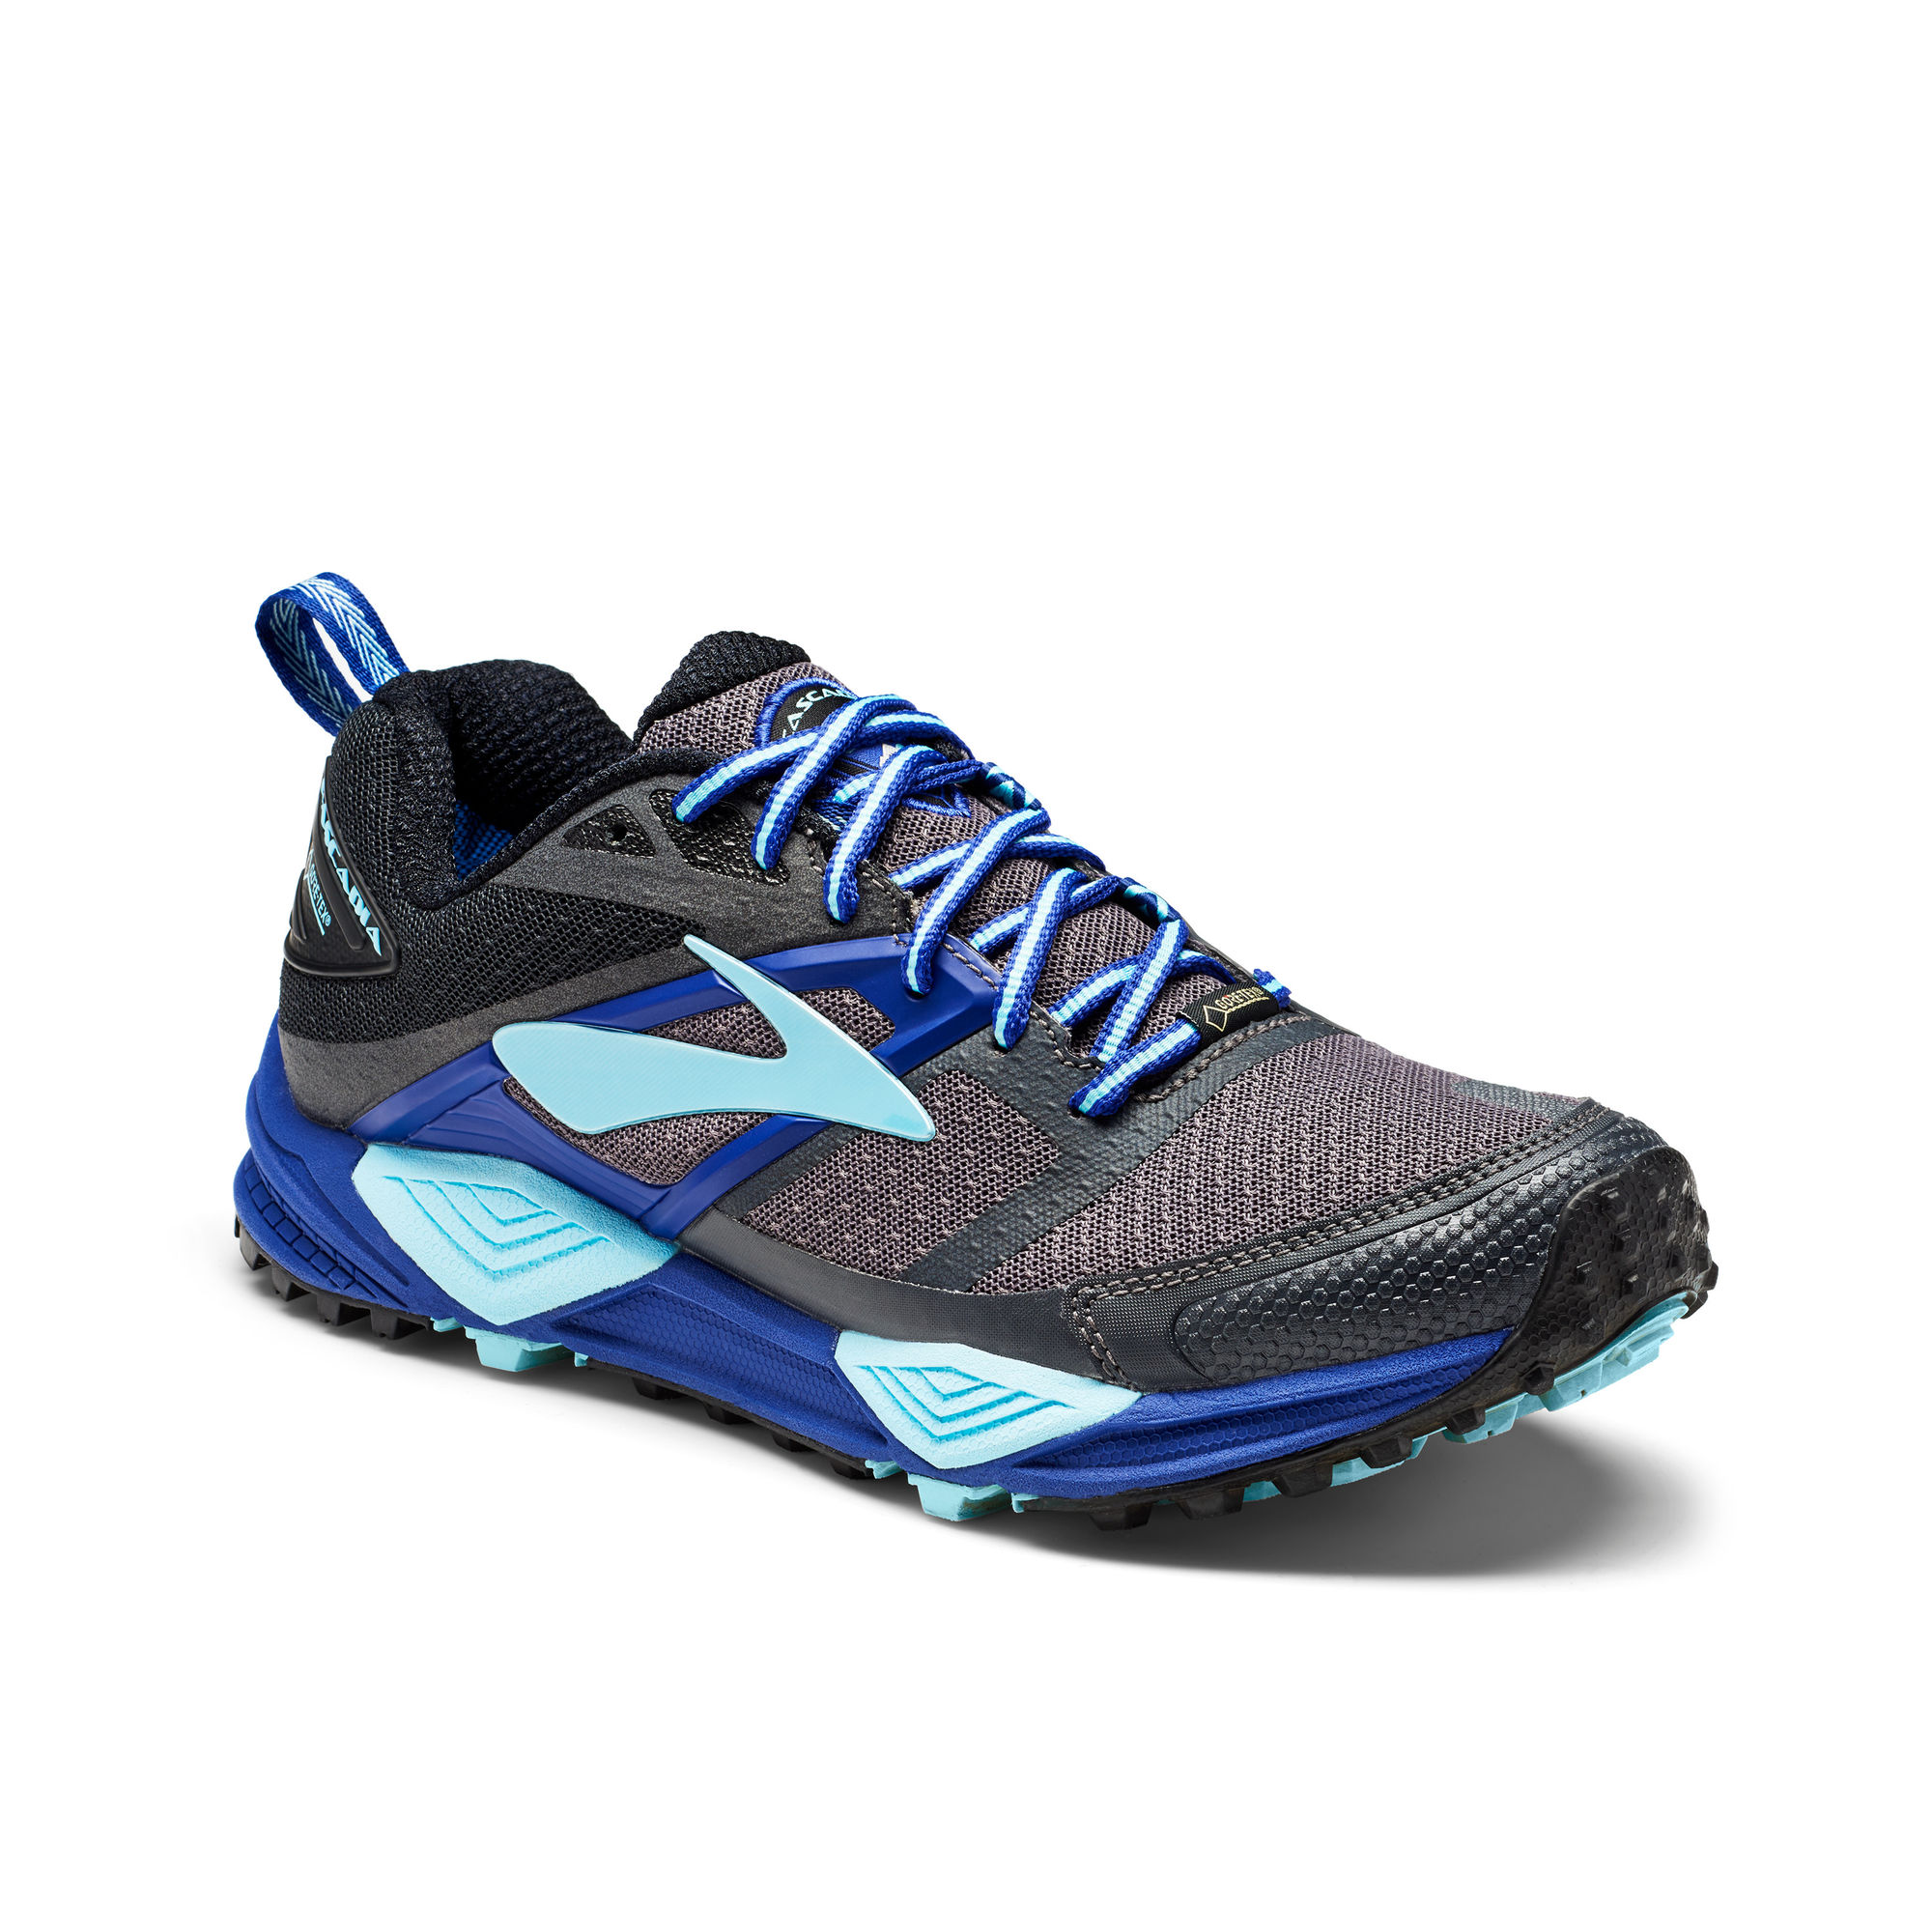 Brooks Lady Cascadia 12 GTX in Grau Blau